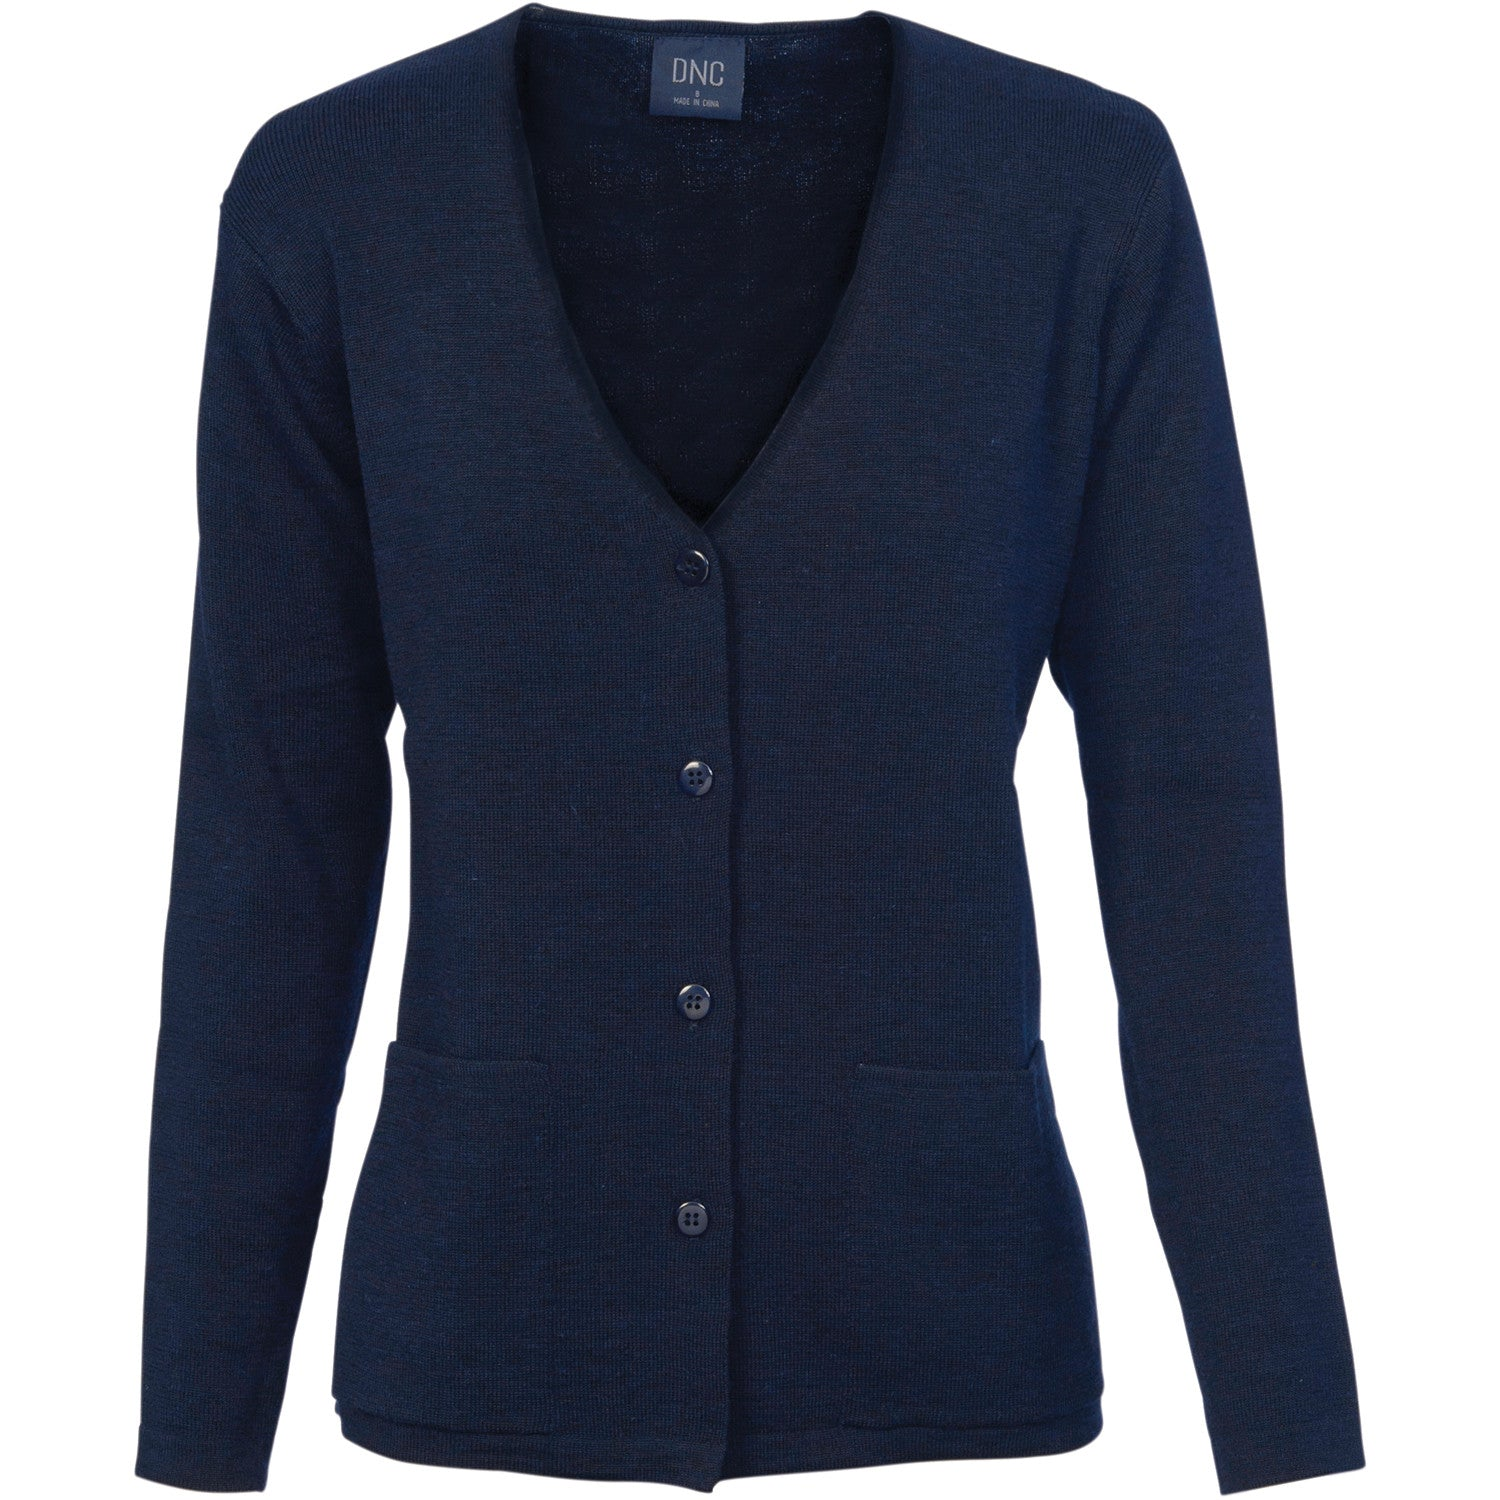 DNC Ladies Wool Blend Knit Cardigan (4332)